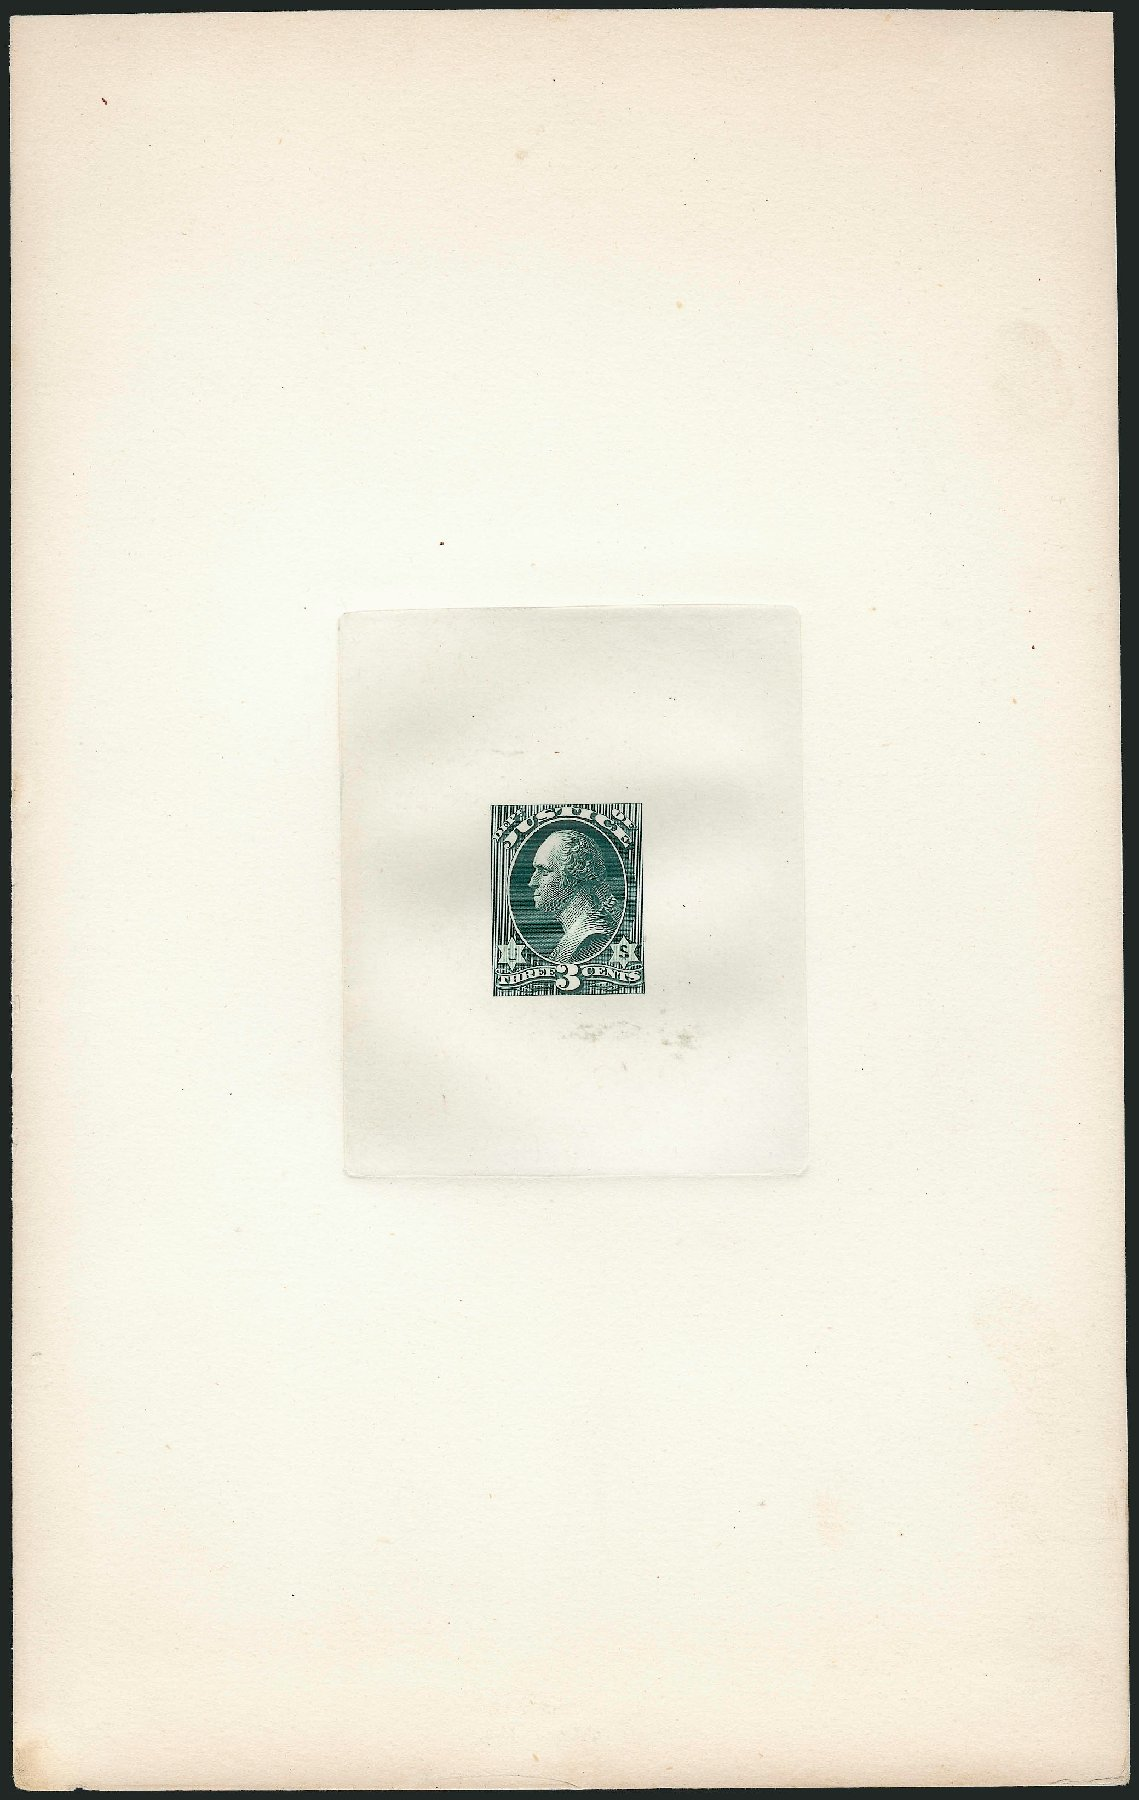 US Stamp Price Scott Cat. O27 - 1873 3c Justice Official. Robert Siegel Auction Galleries, Dec 2012, Sale 1037, Lot 1248